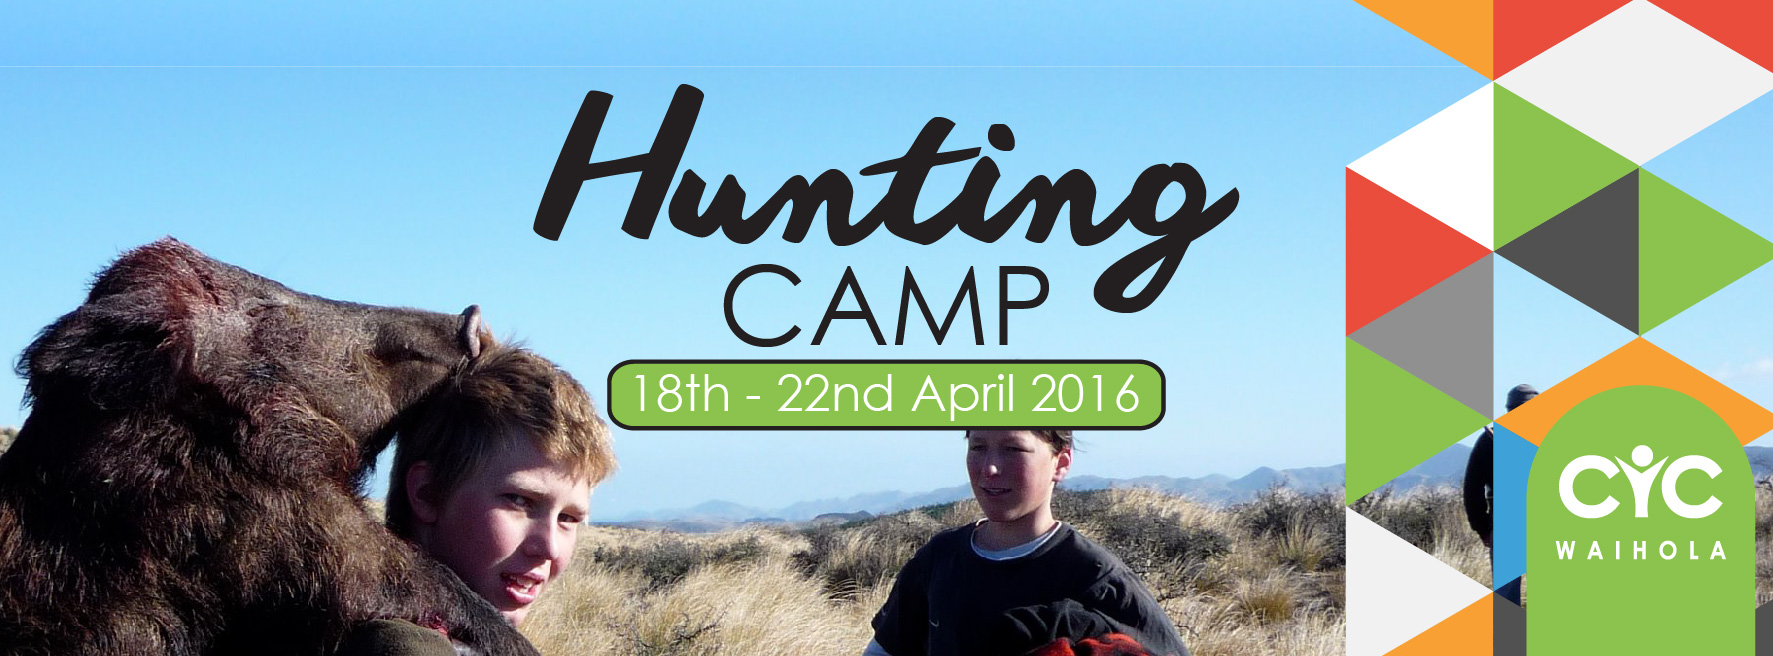 2016-Hunting-Camp-cover-01